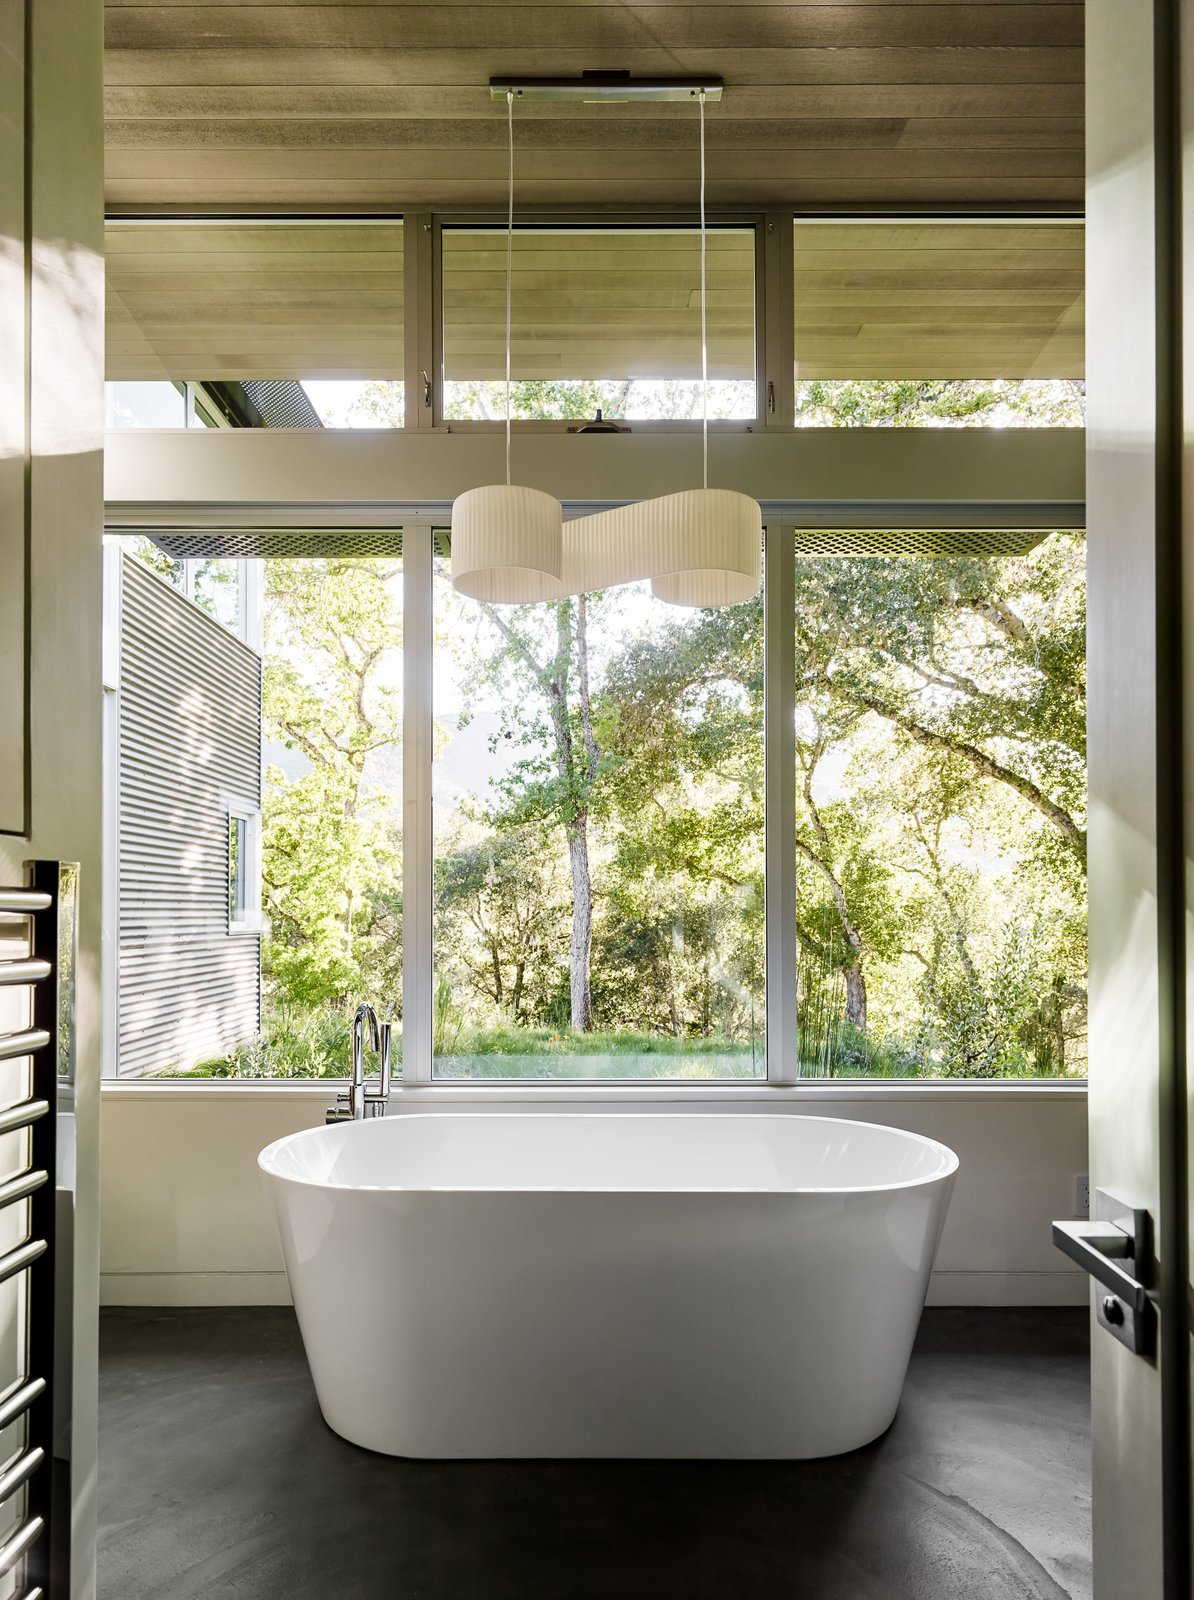 Bath Room, Freestanding Tub, Soaking Tub, and Pendant Lighting Ranch O|H  Photo 9 of 40 in 40 Modern Bathtubs That Soak In the View from Ranch O|H